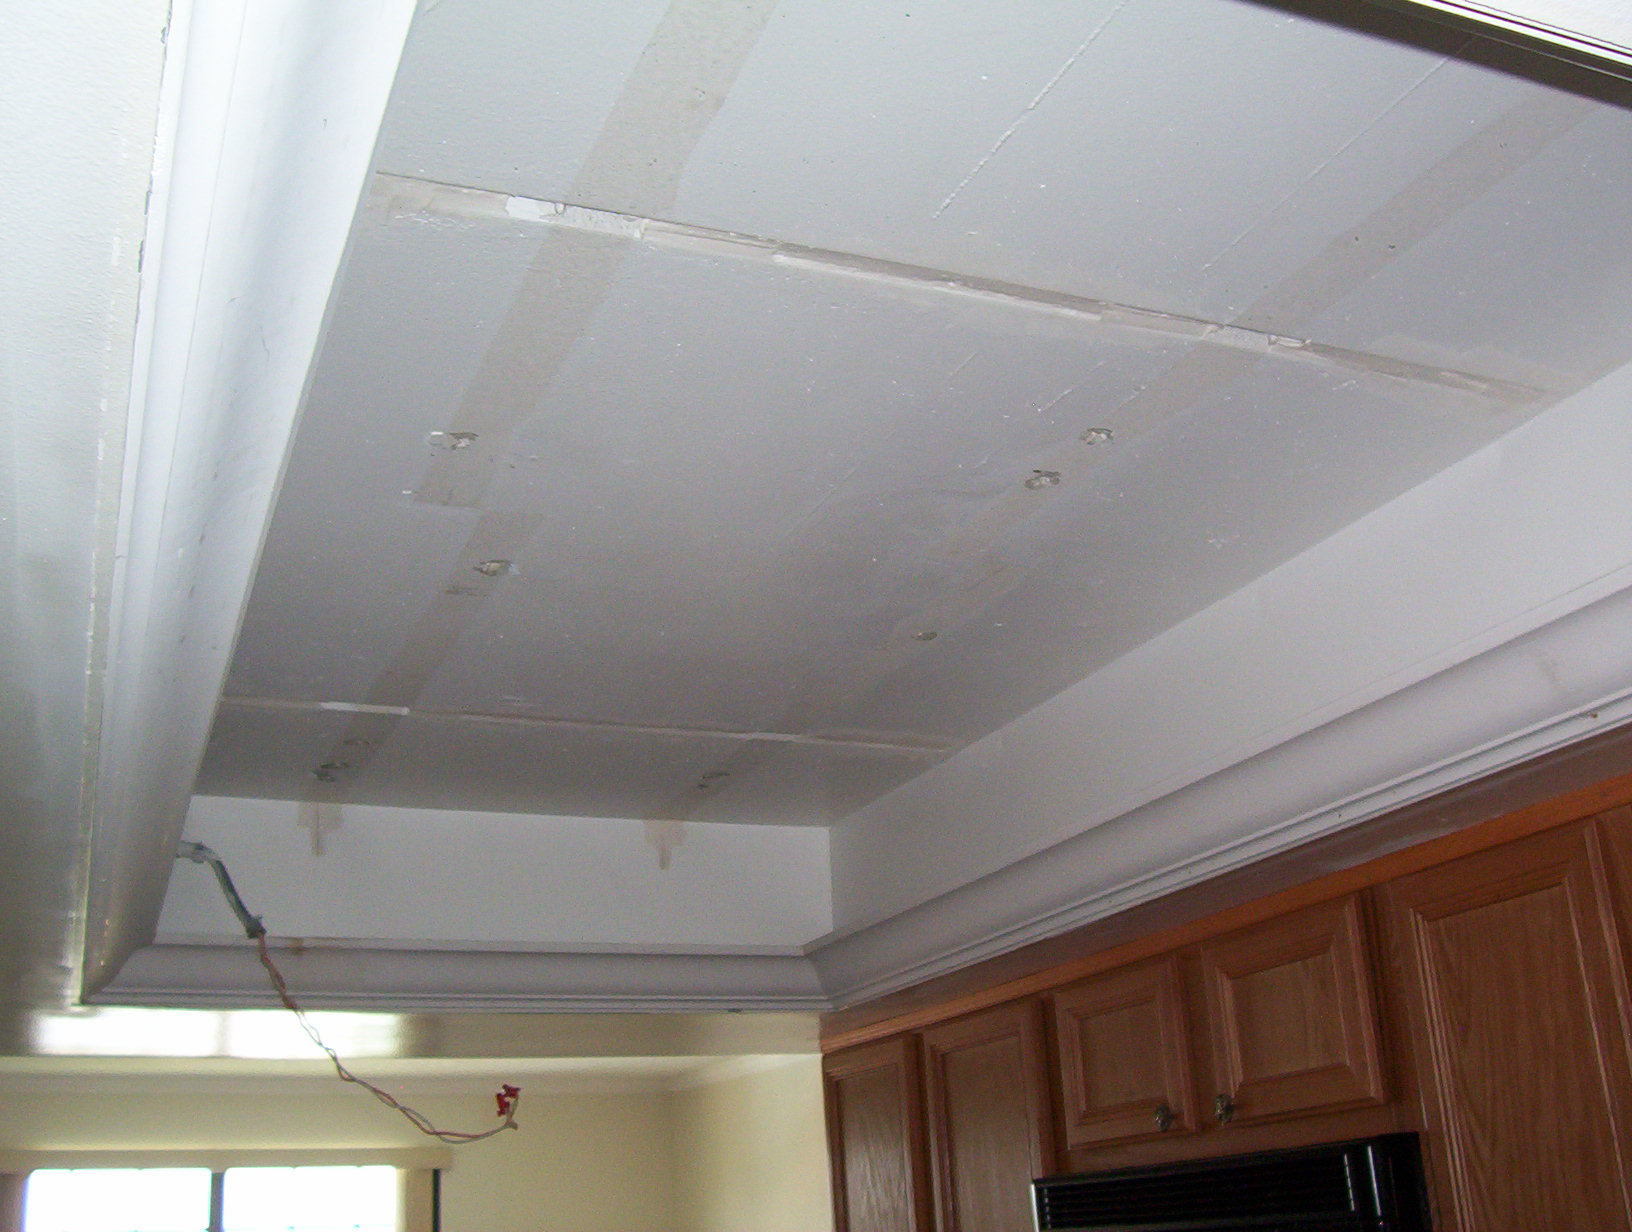 Bathroom Ceiling Light Removal what to do with my old kitchen drop ceiling lighting? kitchen remodel